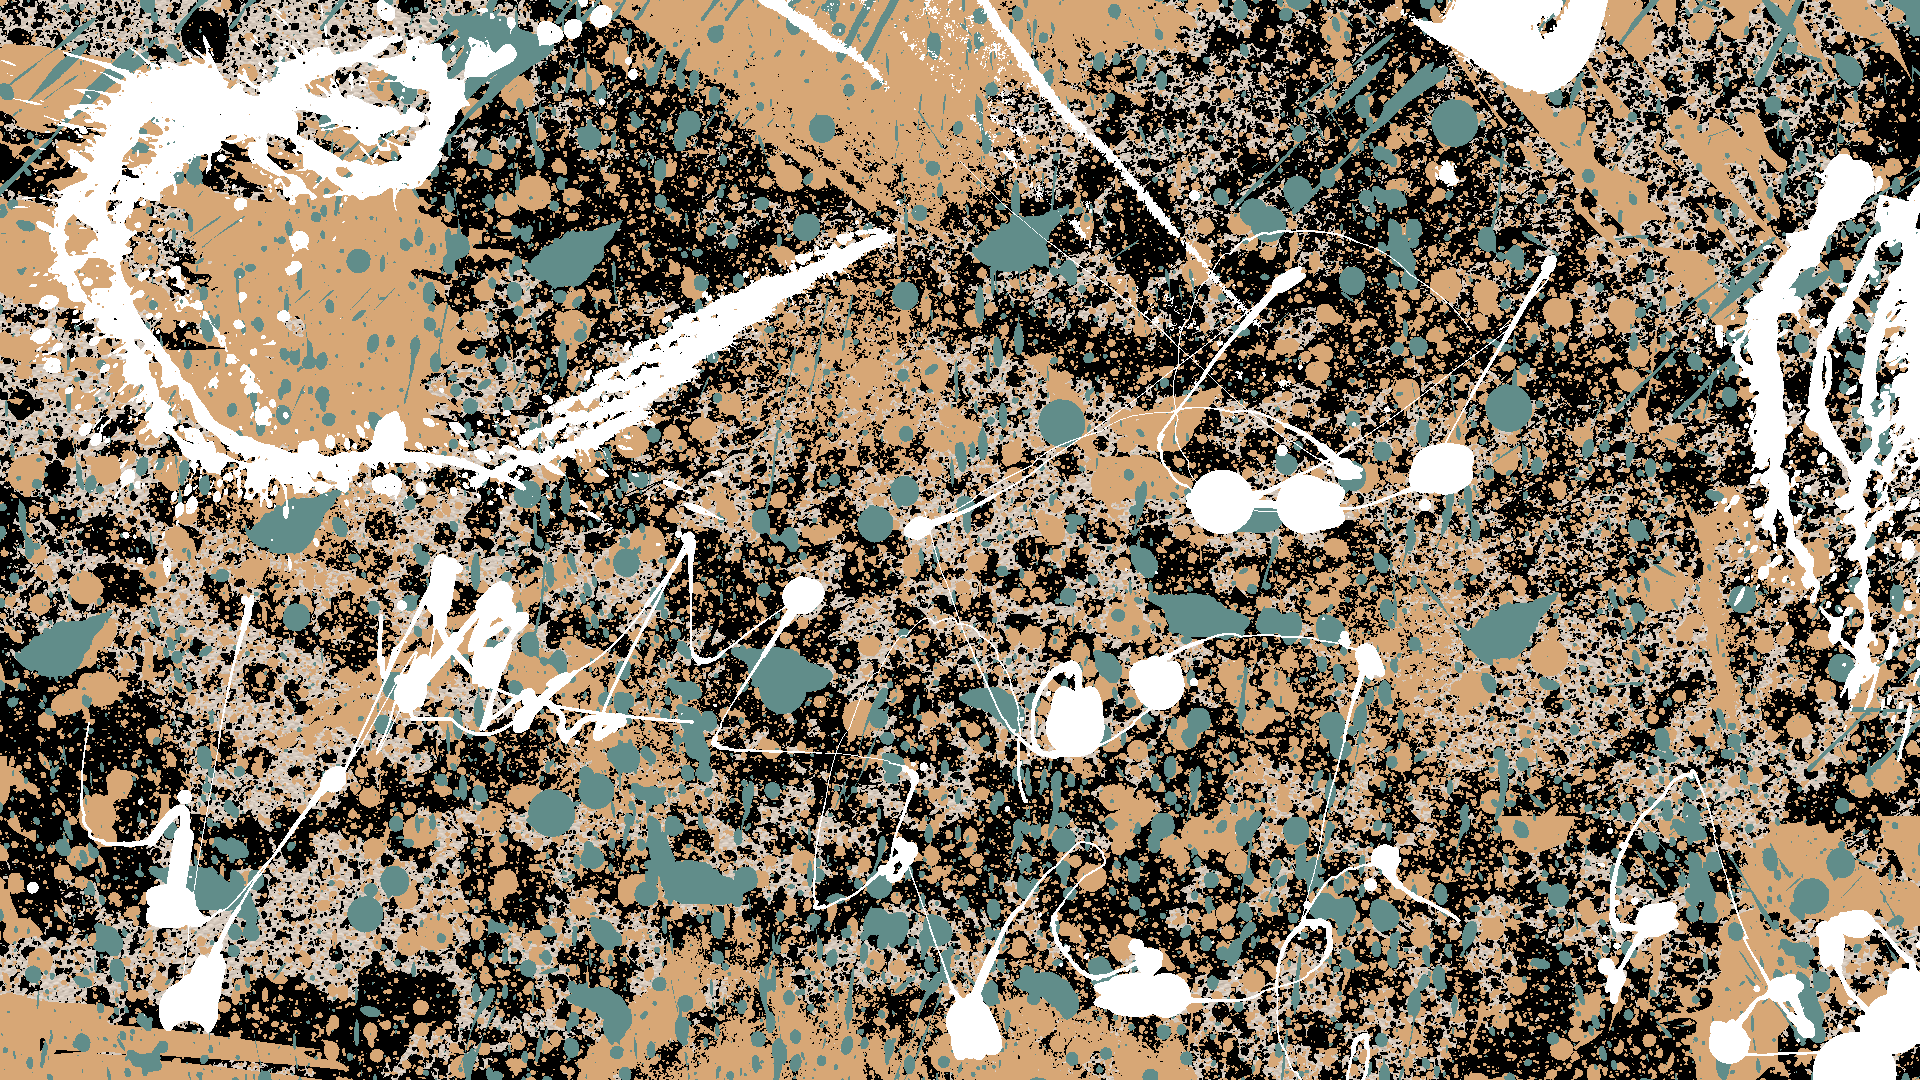 Jackson Pollock Iphone Wallpaper Pin By Buu Dang On Iphone 6s Plus Wallpapers Must To Have